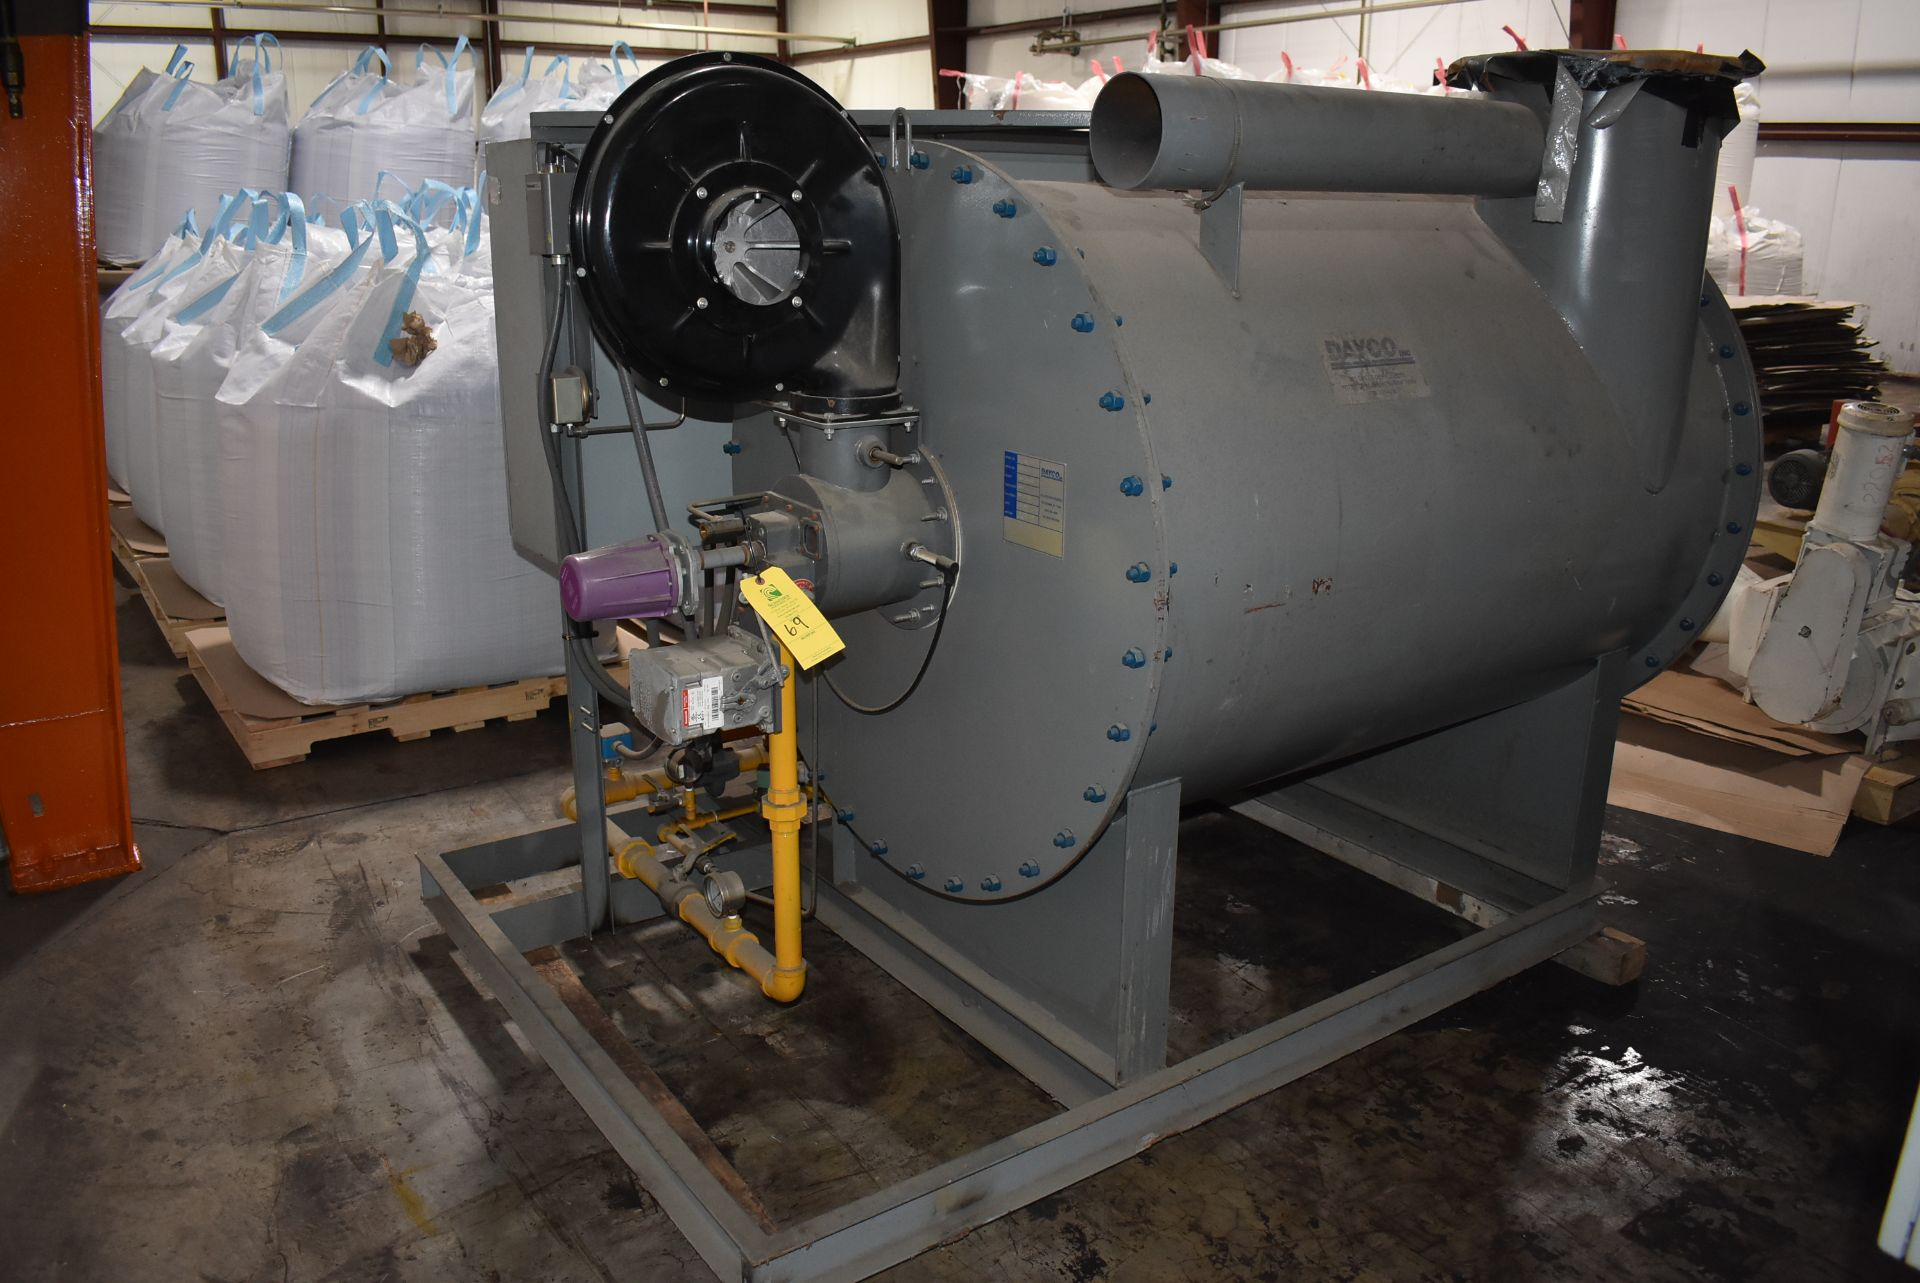 Dayco Model #DFG2200 Direct Fire Handling Unit, SN 119609-A - Image 4 of 5